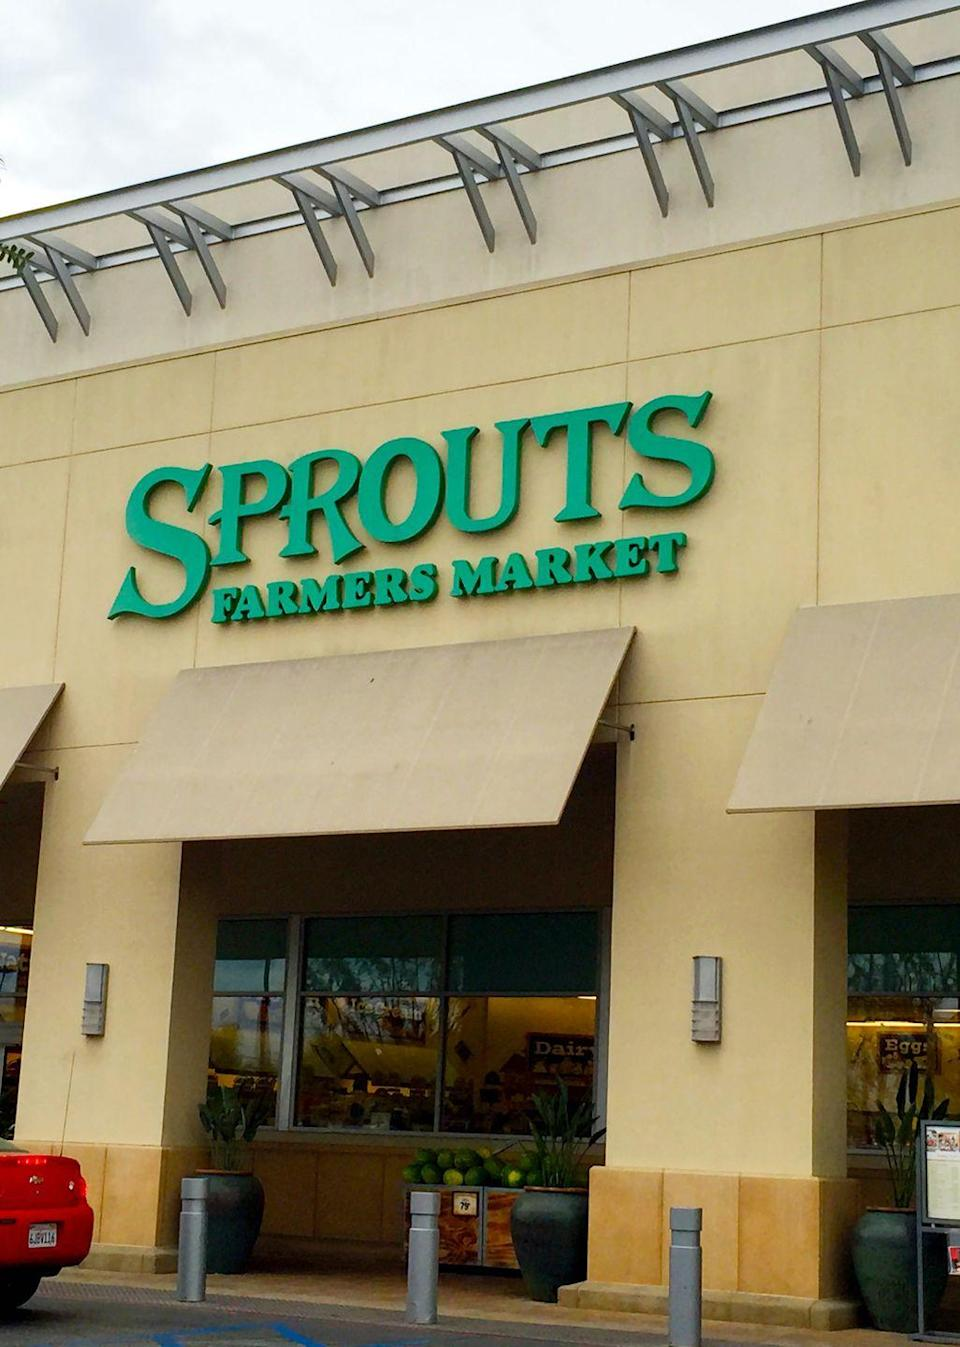 "<p>Oh no, you ran out of butter! Go to <a href=""https://www.sprouts.com/"" rel=""nofollow noopener"" target=""_blank"" data-ylk=""slk:Sprouts Farmers Market"" class=""link rapid-noclick-resp"">Sprouts Farmers Market</a> between 7 a.m. to 4 p.m. to grab a pack. Your dinner rolls will thank you.</p>"